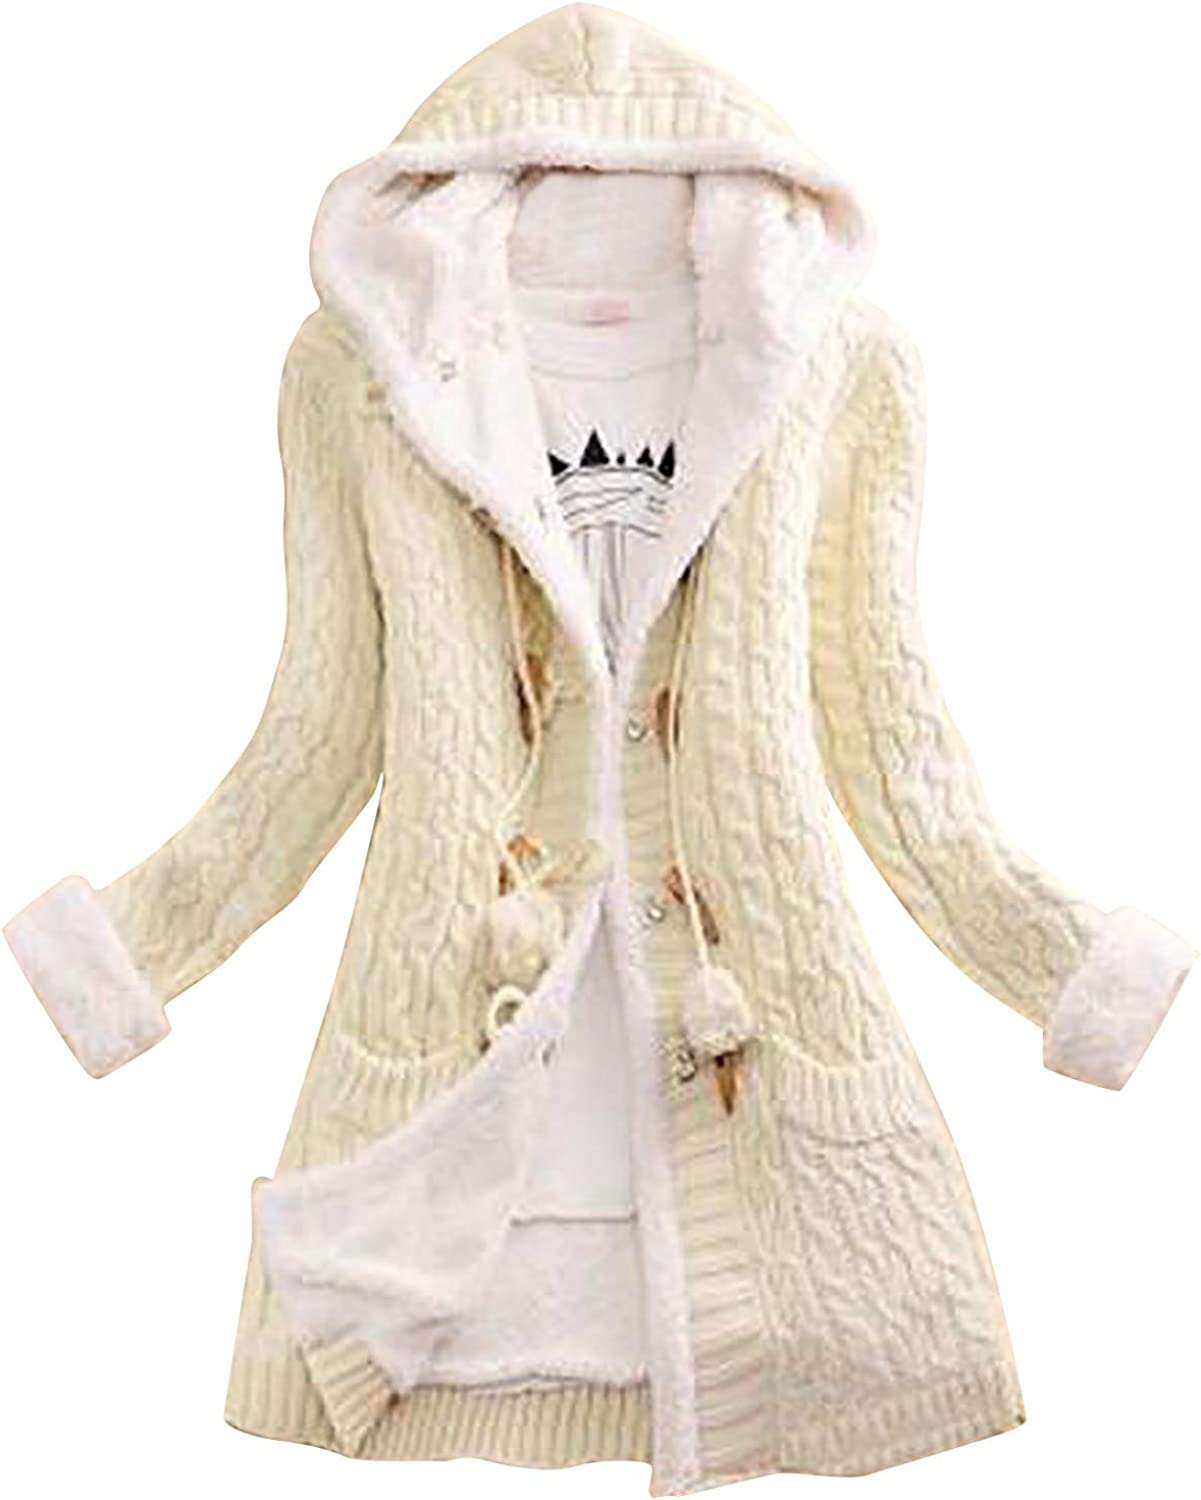 Womens Winter Coats, Button Solid Color Knit Sweater Cardigans Double Thick Warm Casual Knit Sweater Coats